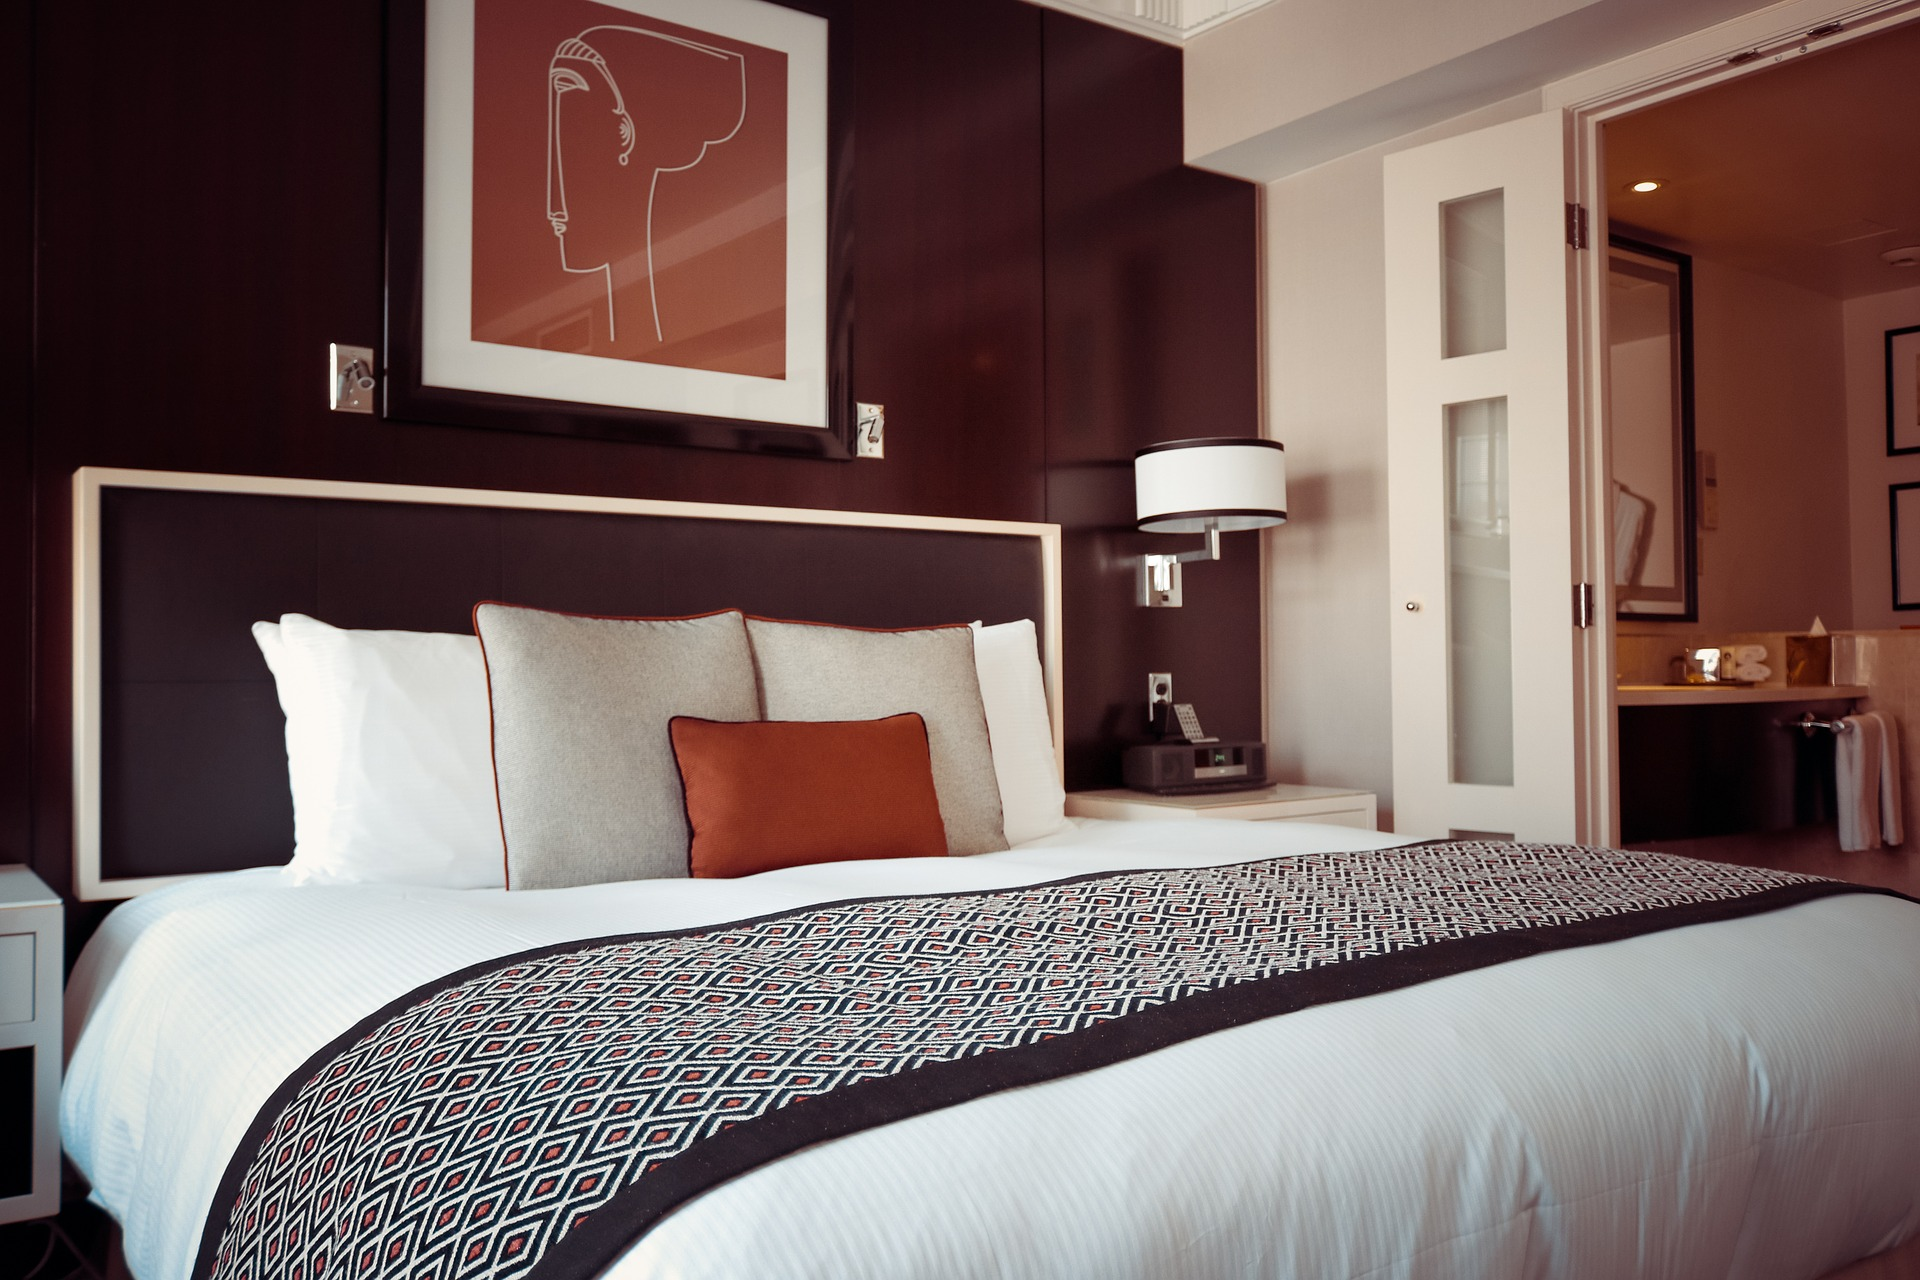 Hotel-Room-Bed